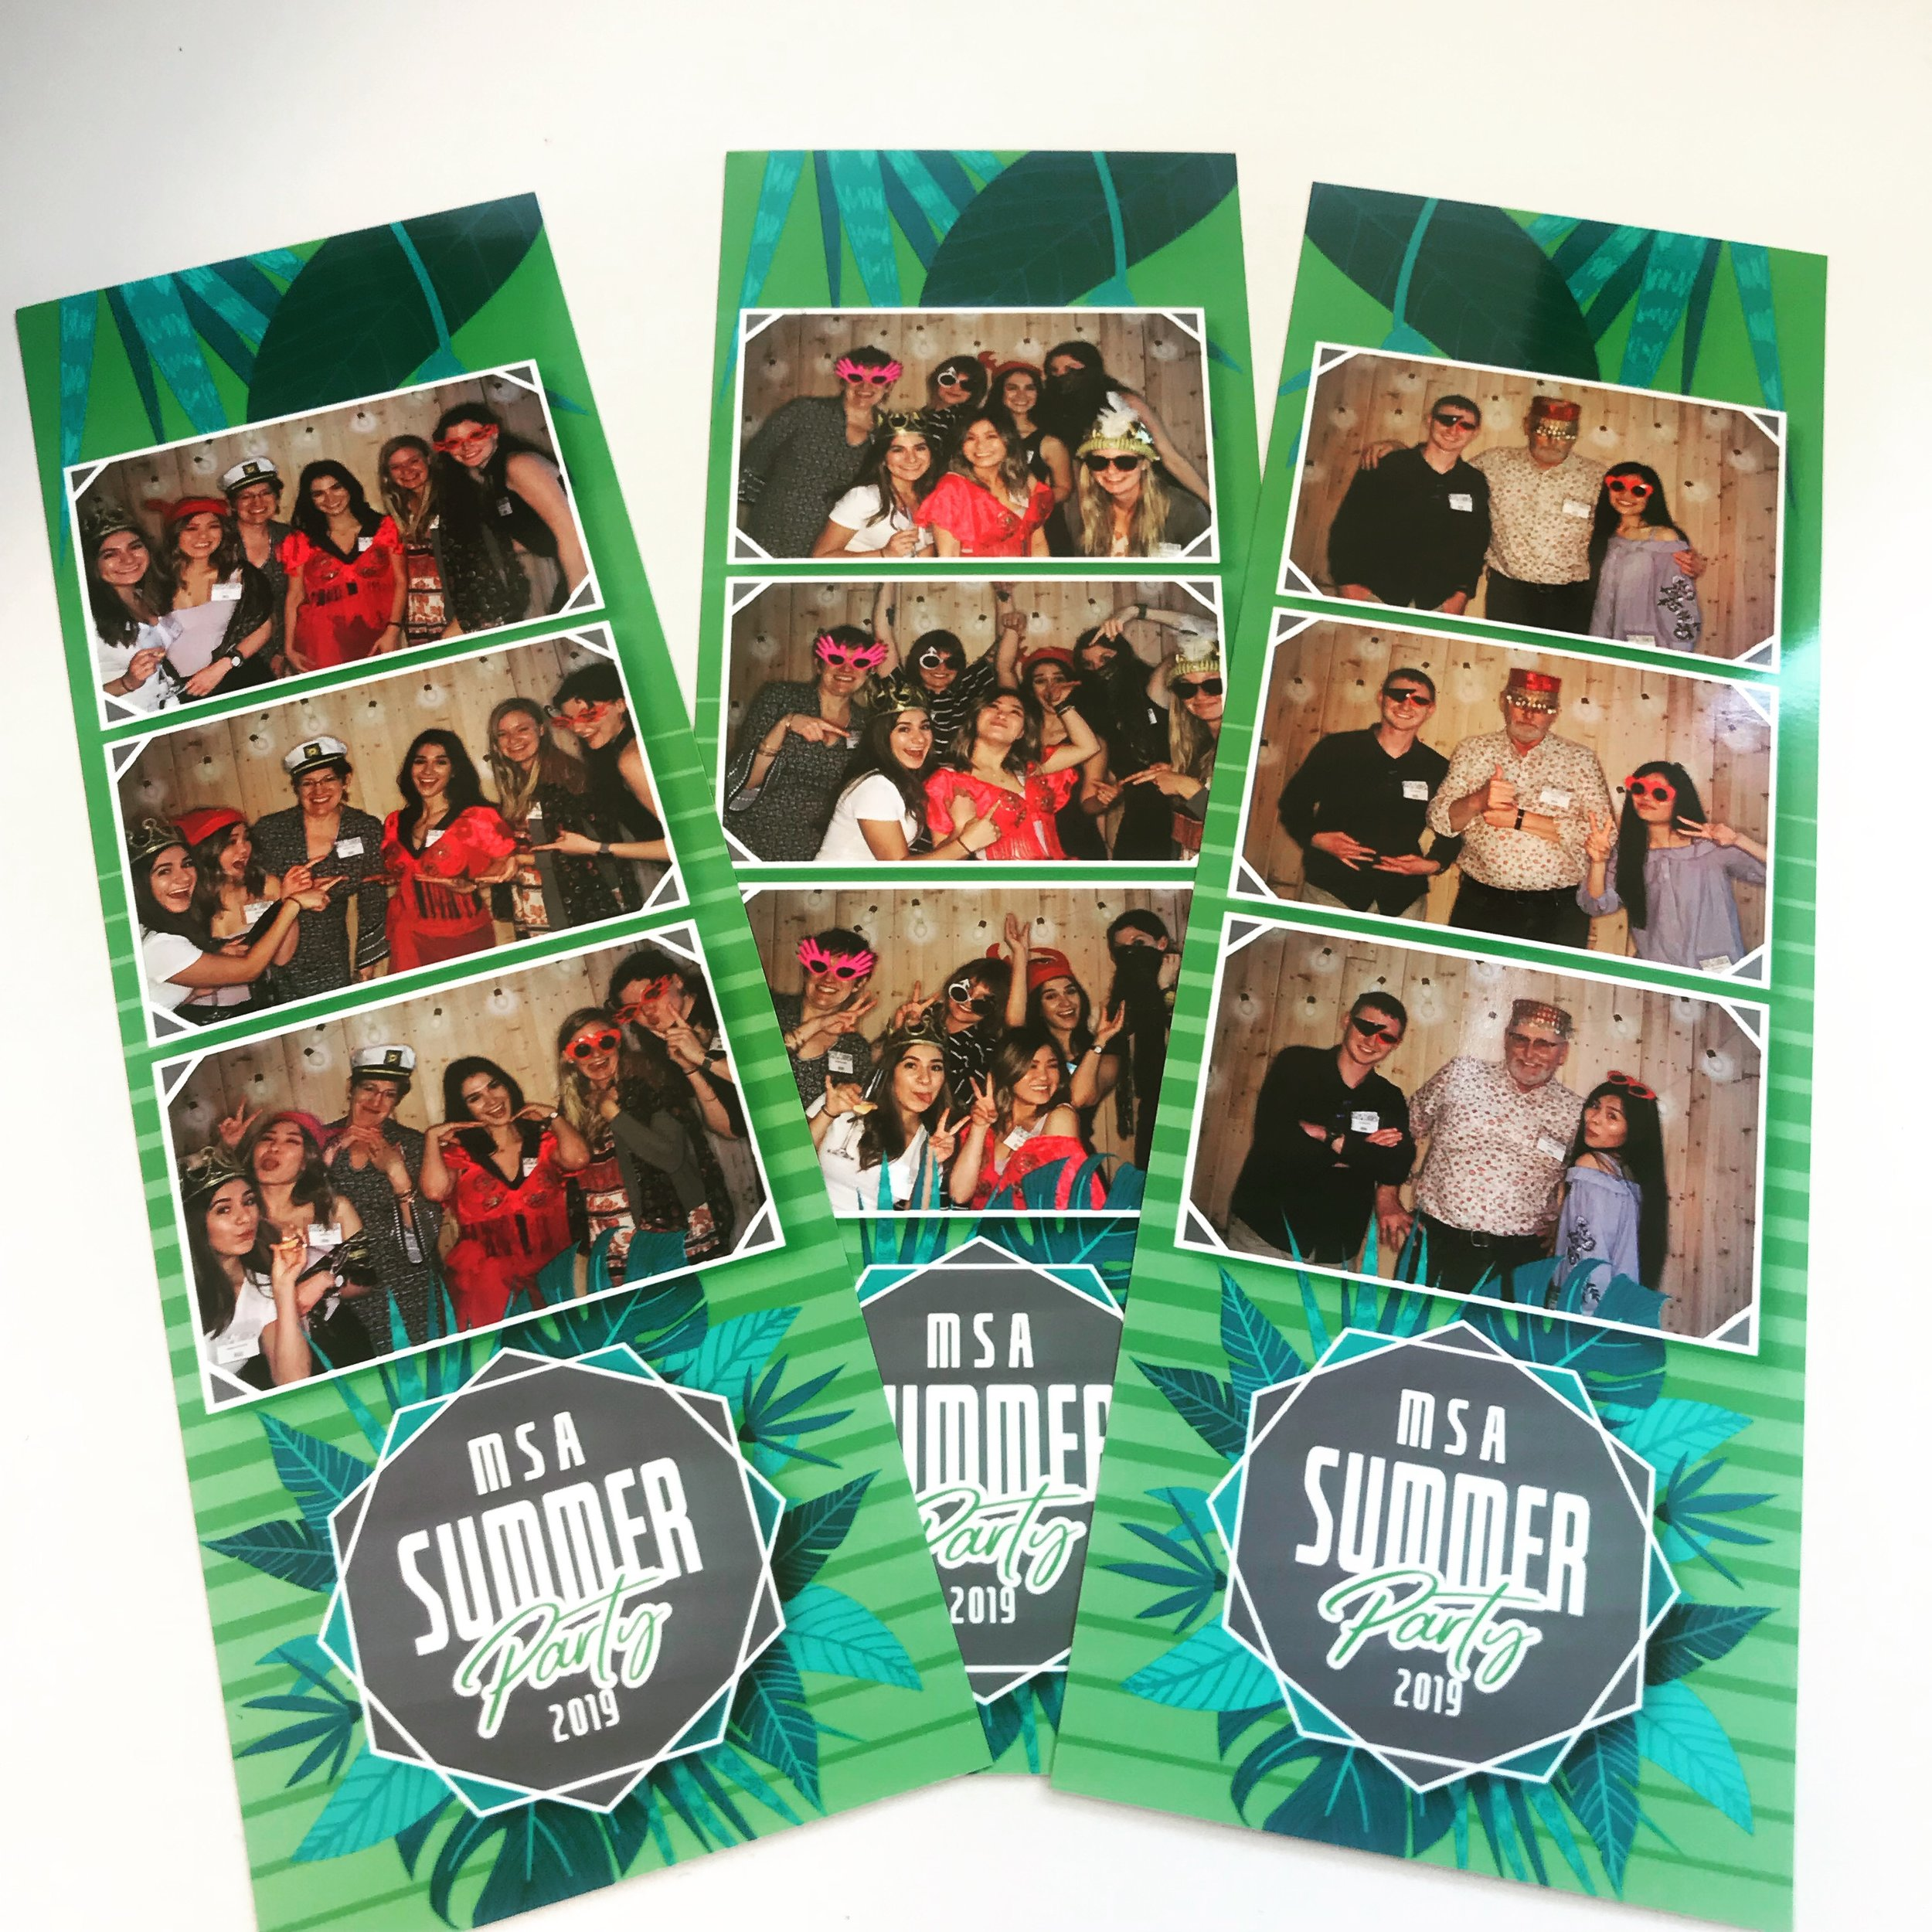 Shout out to  Amos Productions  for the photobooth fun!